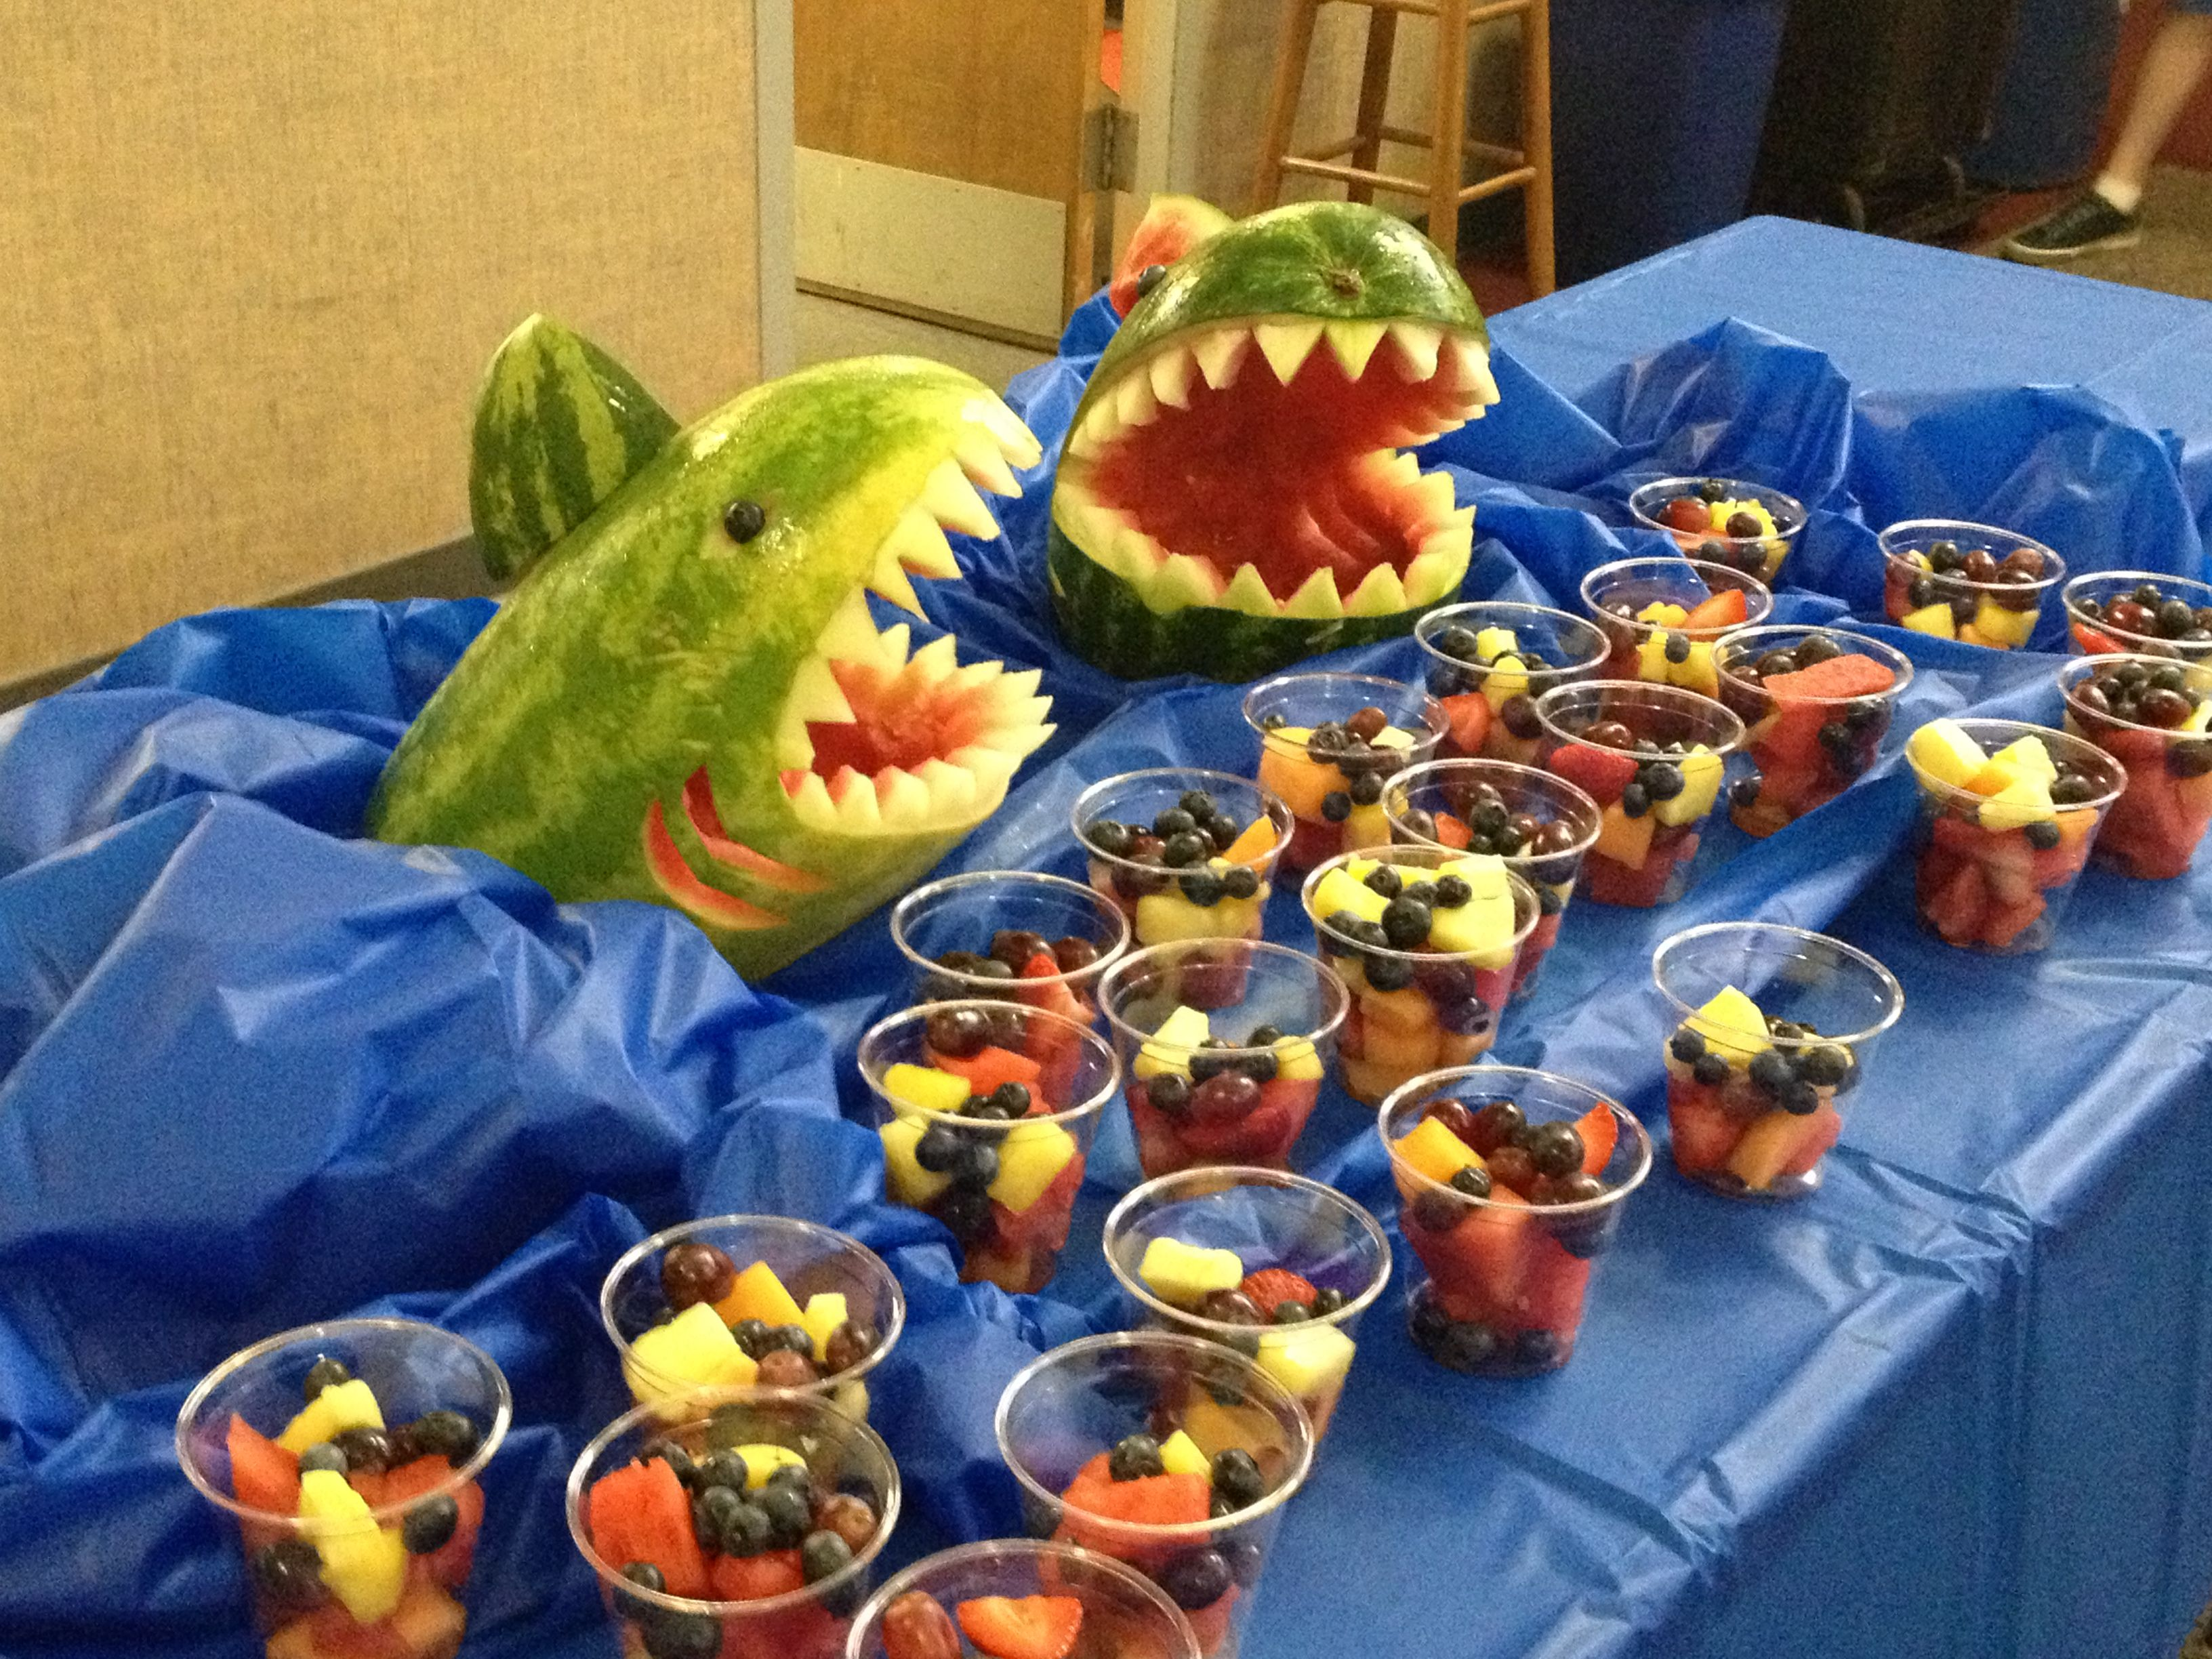 watermelon shark vbs snack parting of the red sea use blue